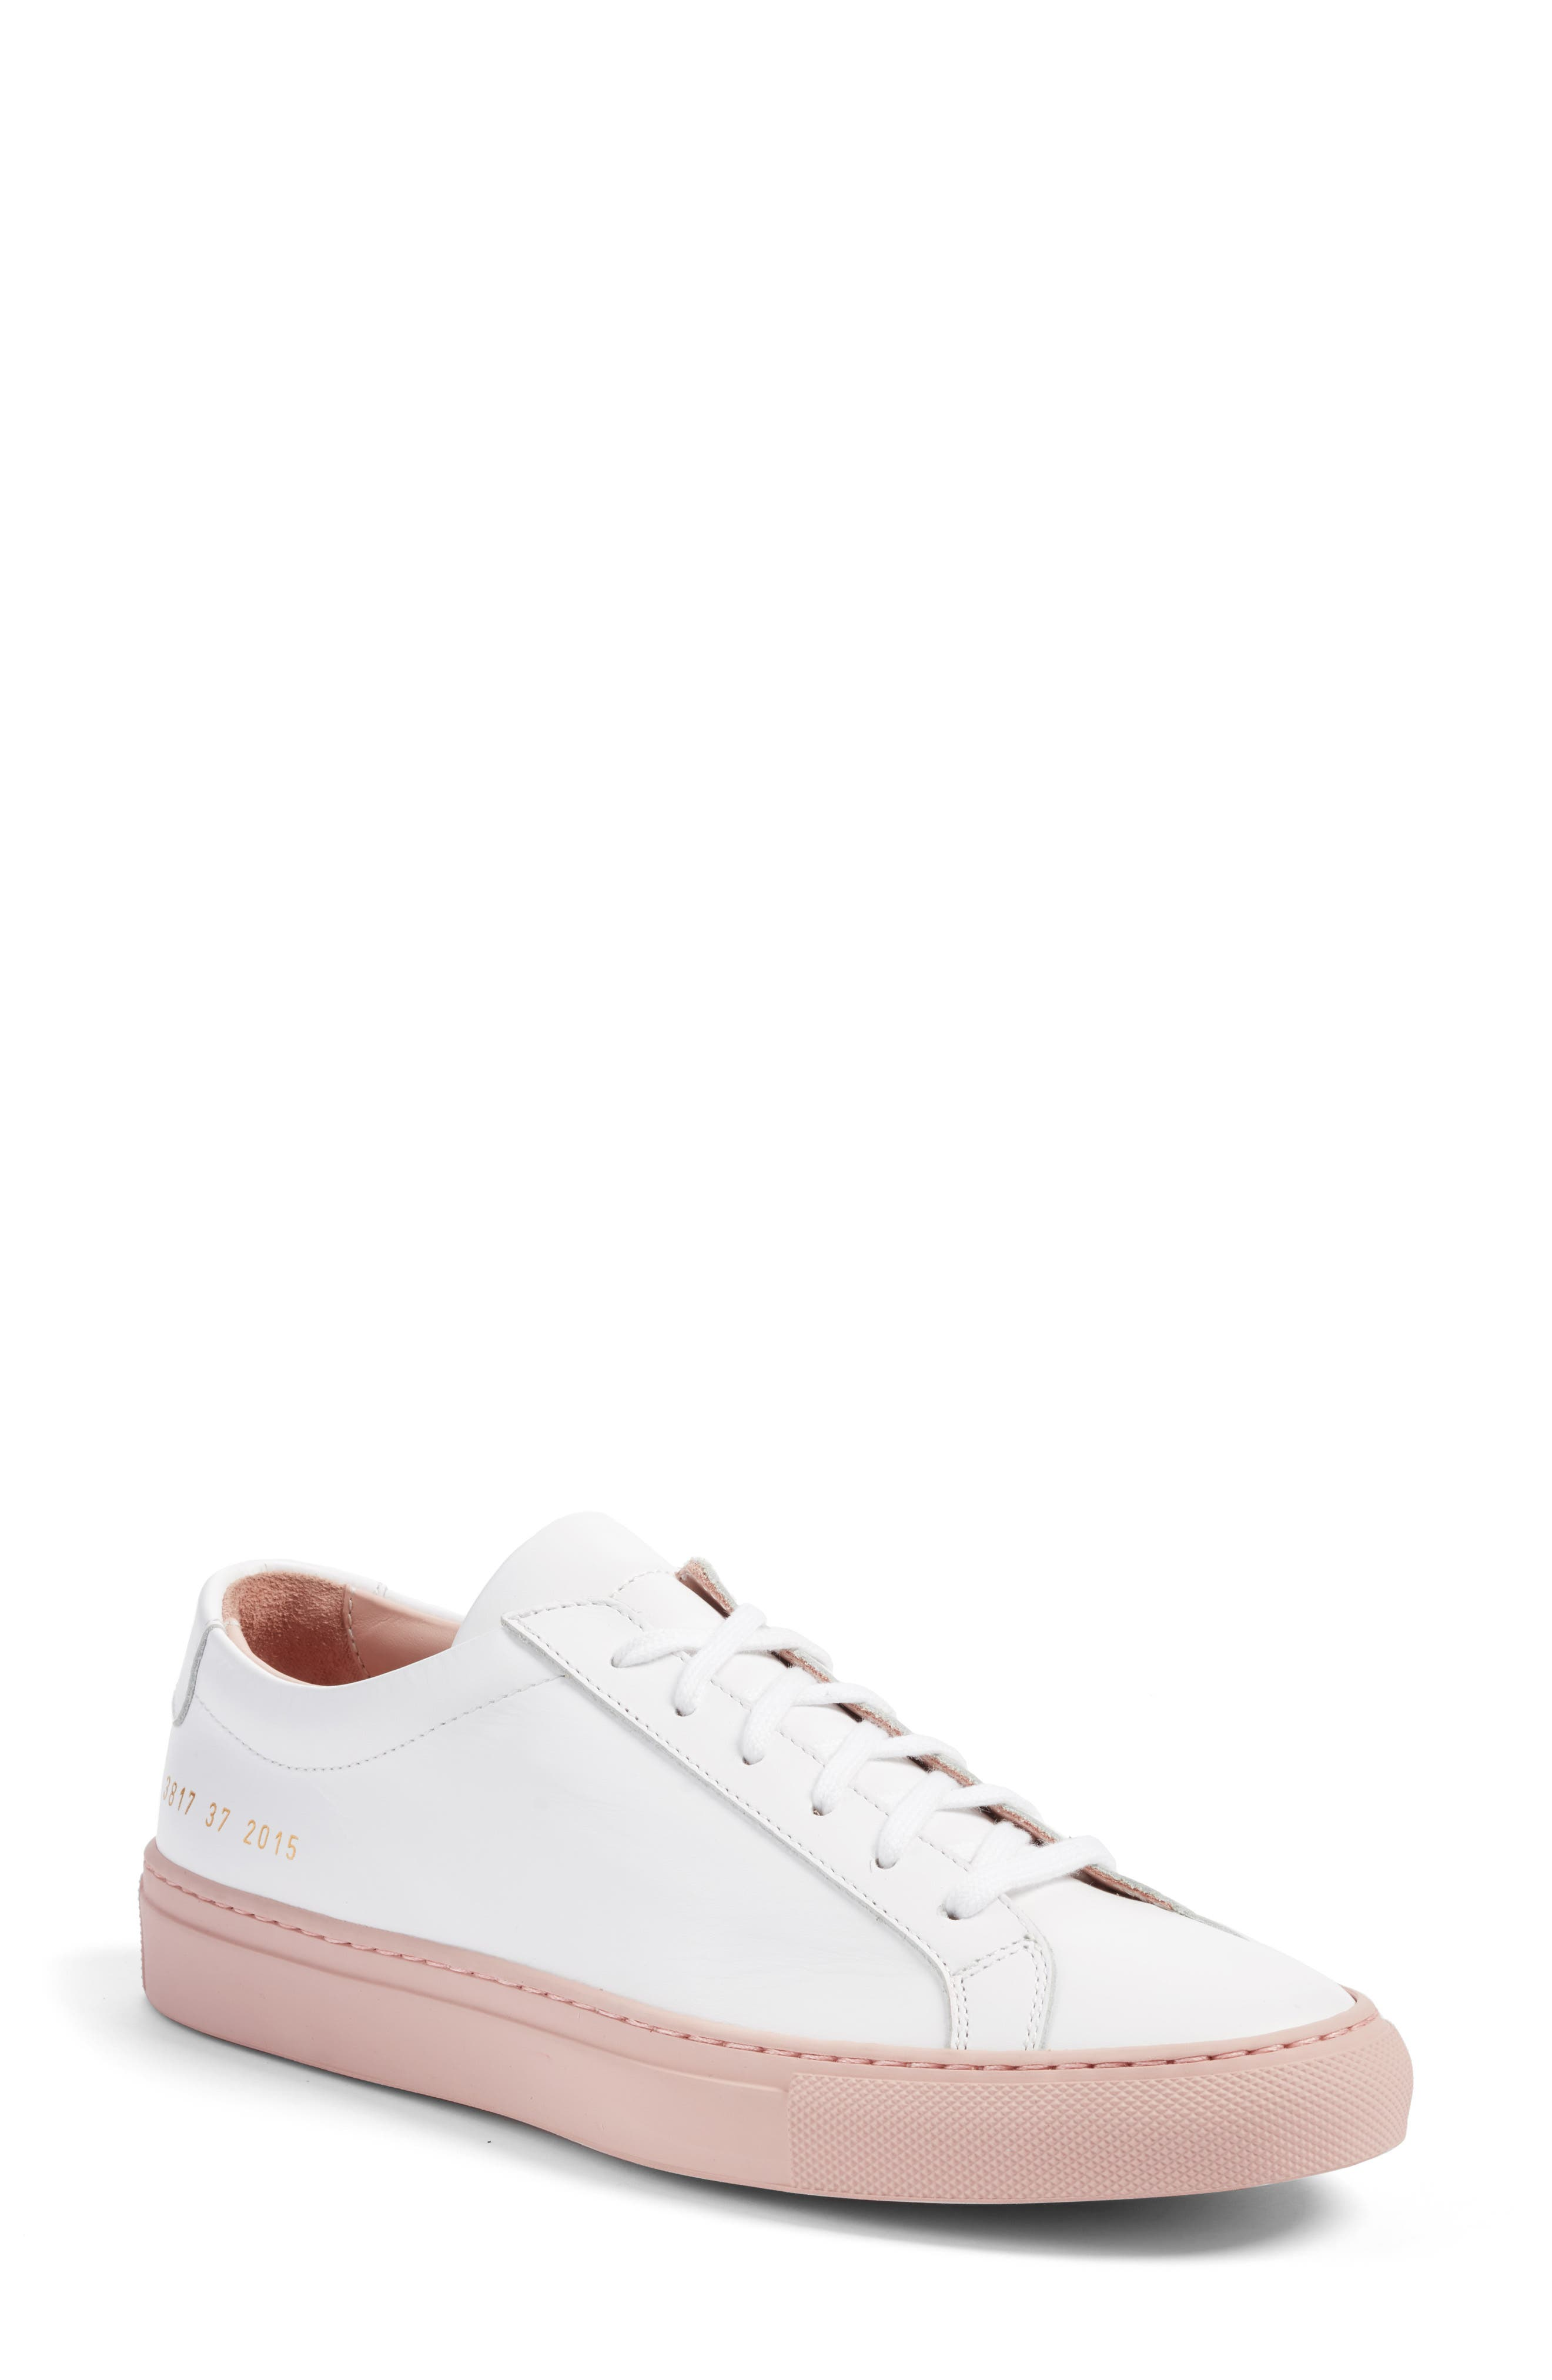 Main Image - Common Projects Achilles Sneaker (Women)